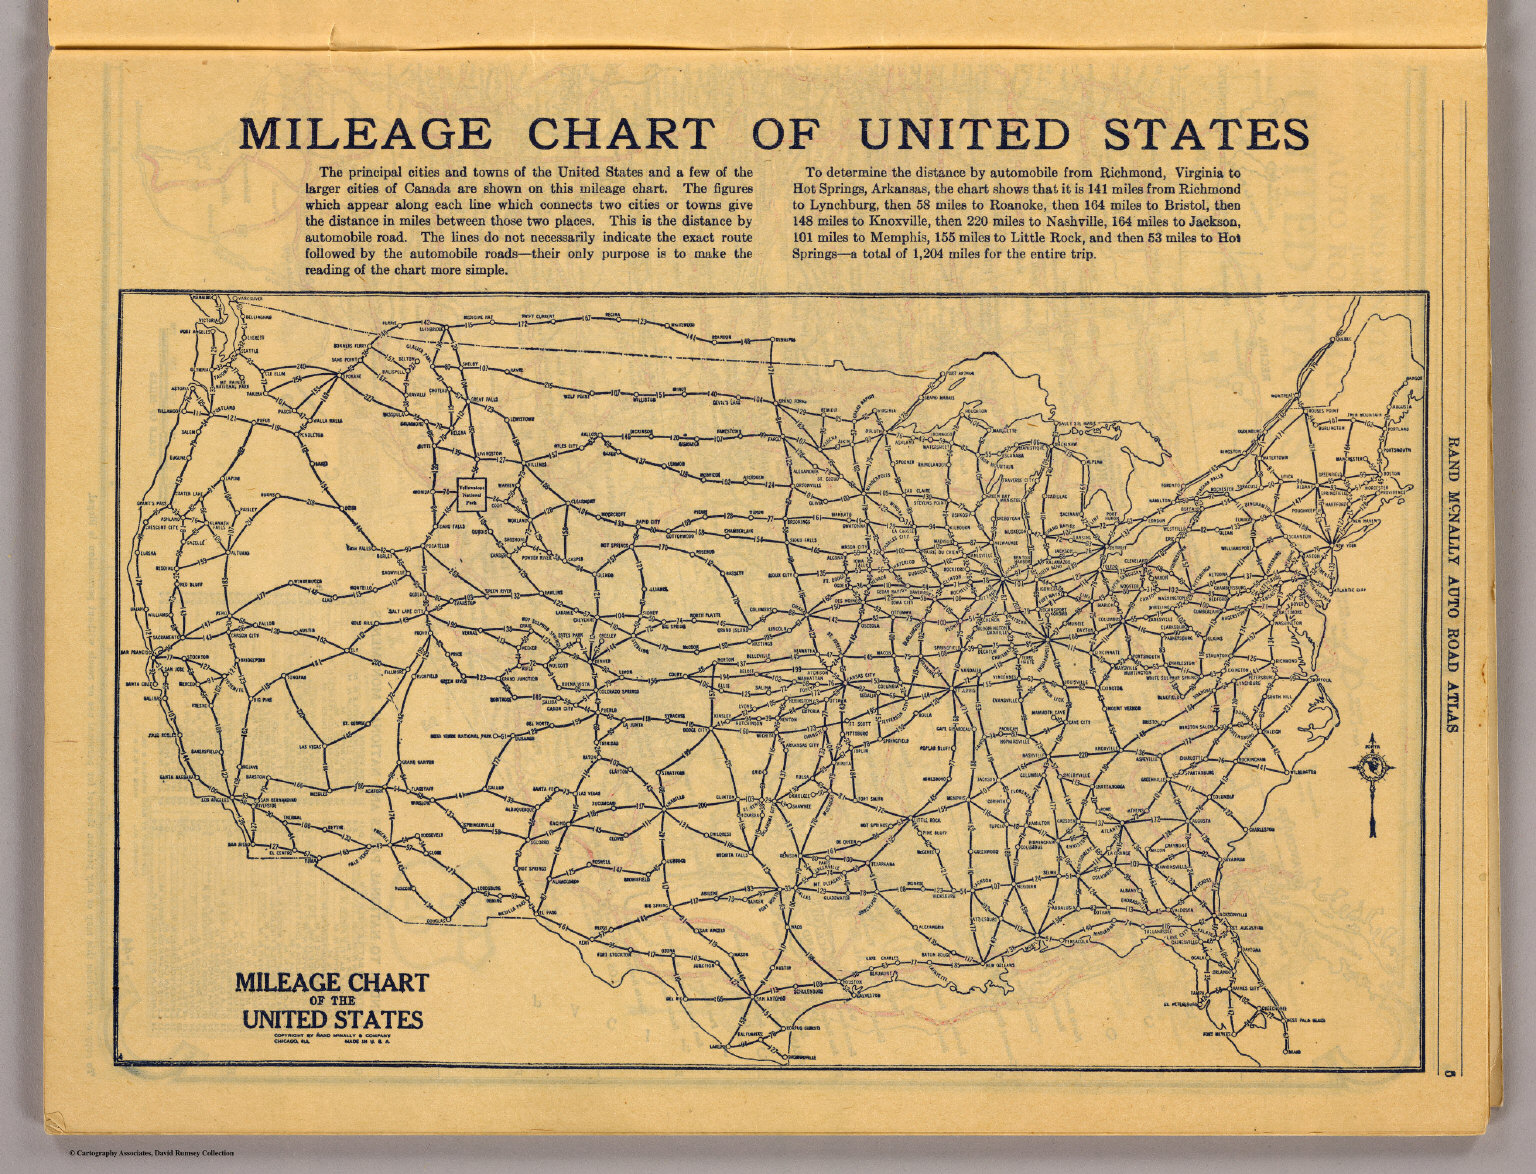 United States Mileage Chart Chart - Usa road map distances